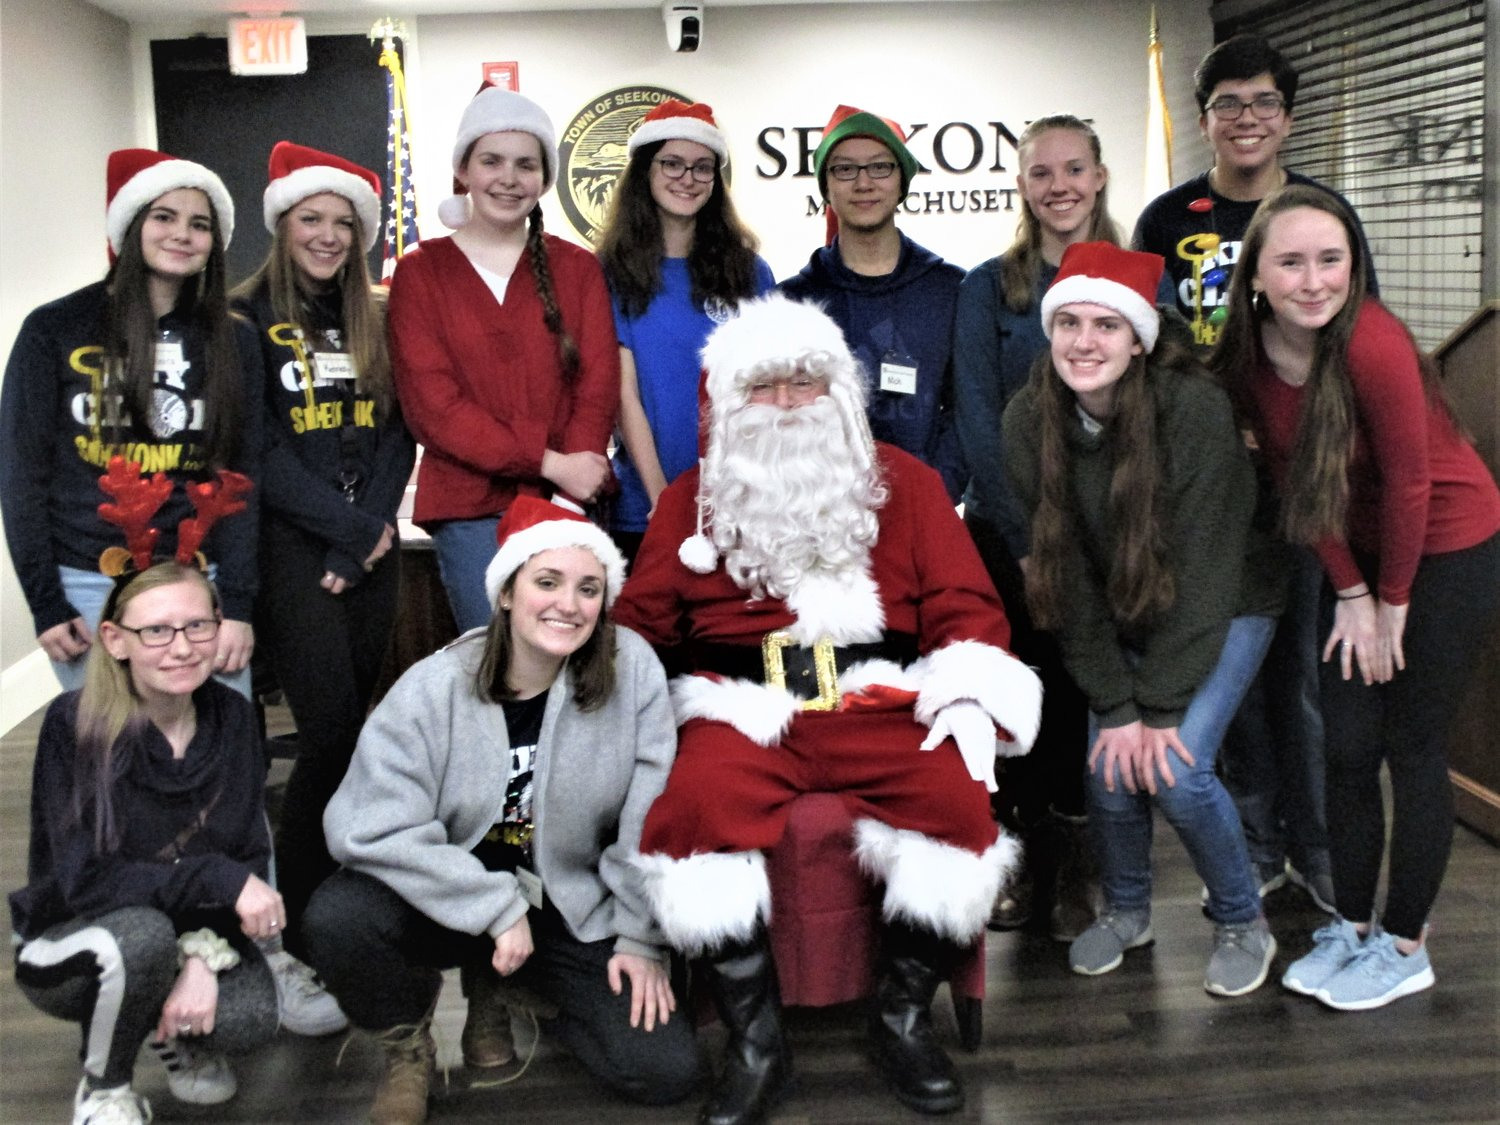 Left to right top row:  Veronica, Kennedy, Danielle, Kelsey, Nick & Alex